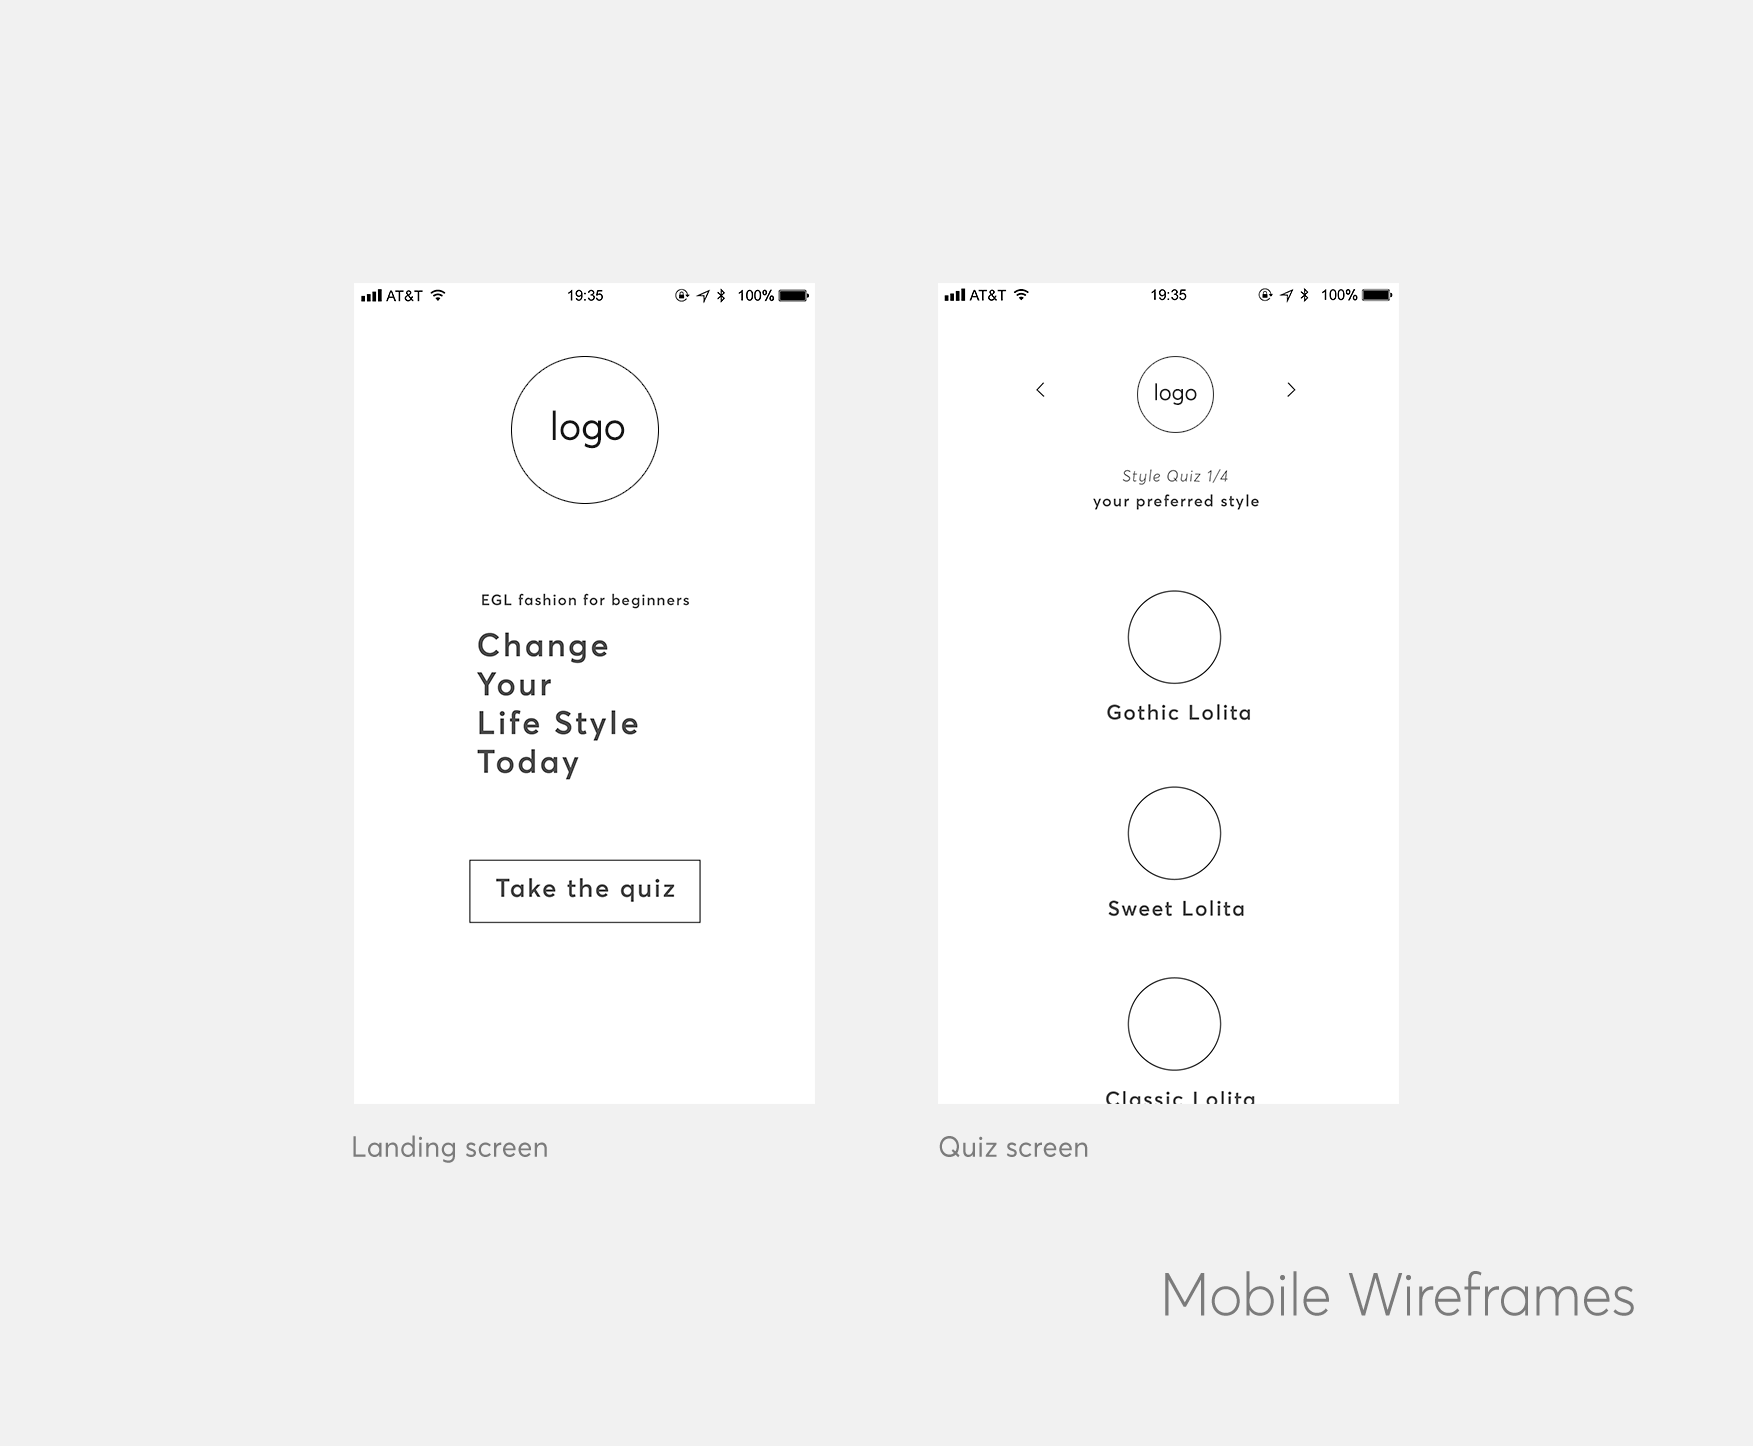 mobile_wireframes.png